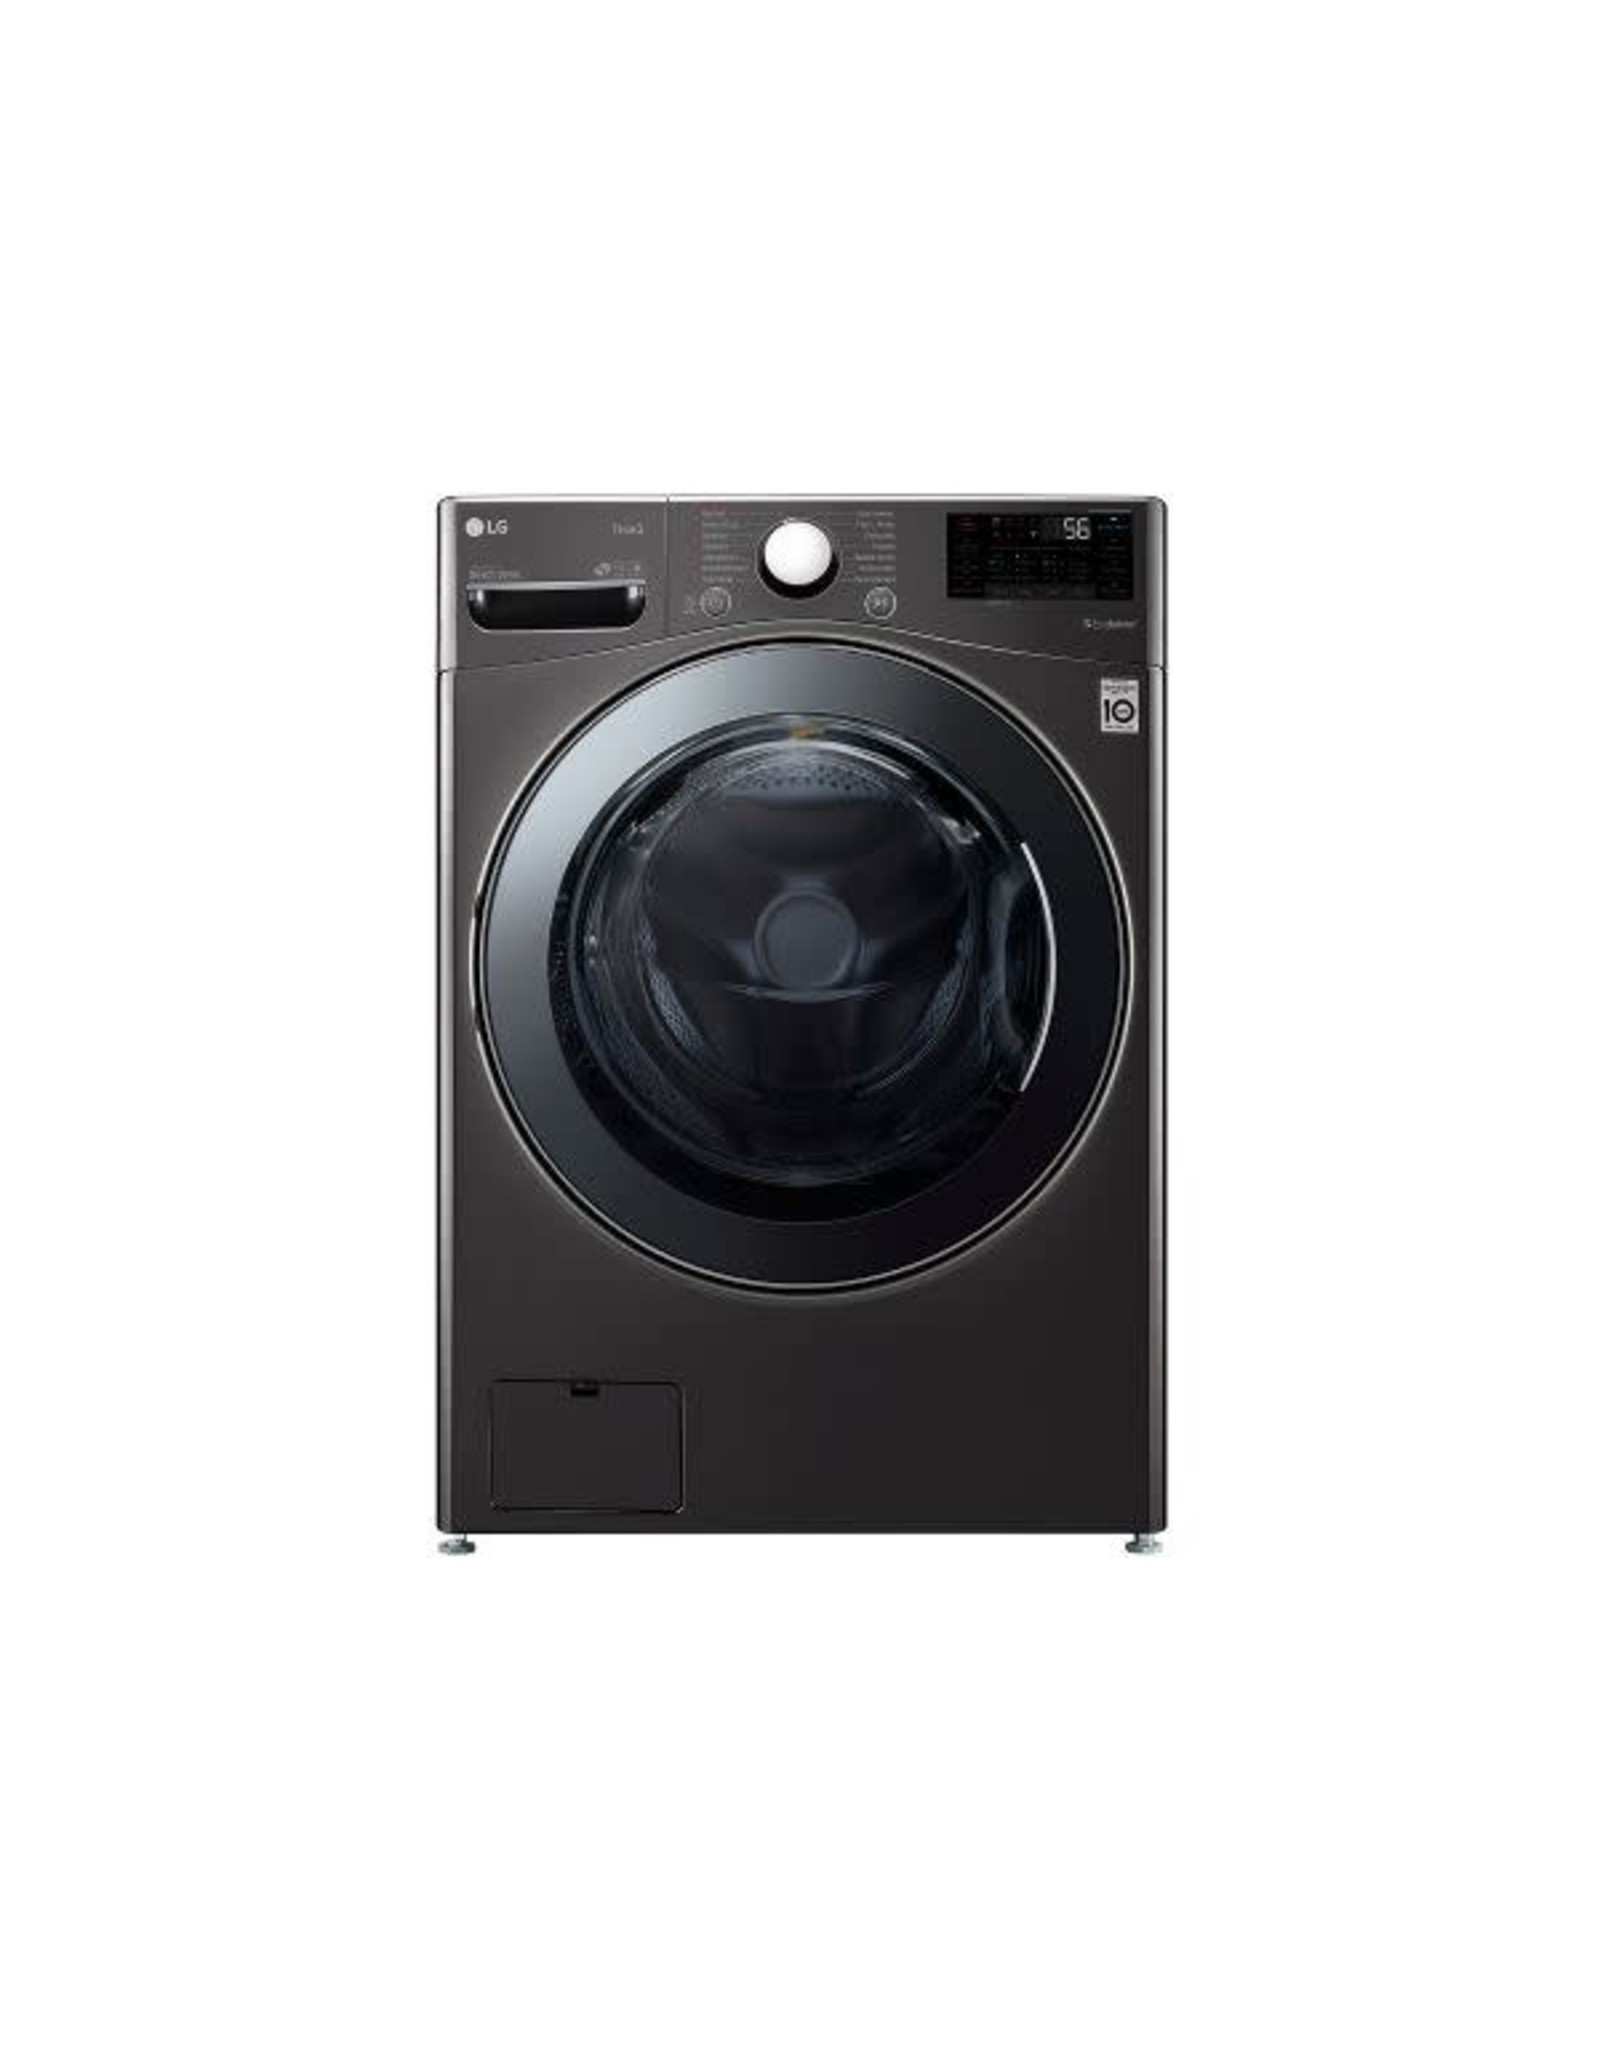 LG Electronics combo 27 in. 4.5 cu. ft. Black Steel Ultra Large Capacity Electric All-in-One Washer Dryer Combo